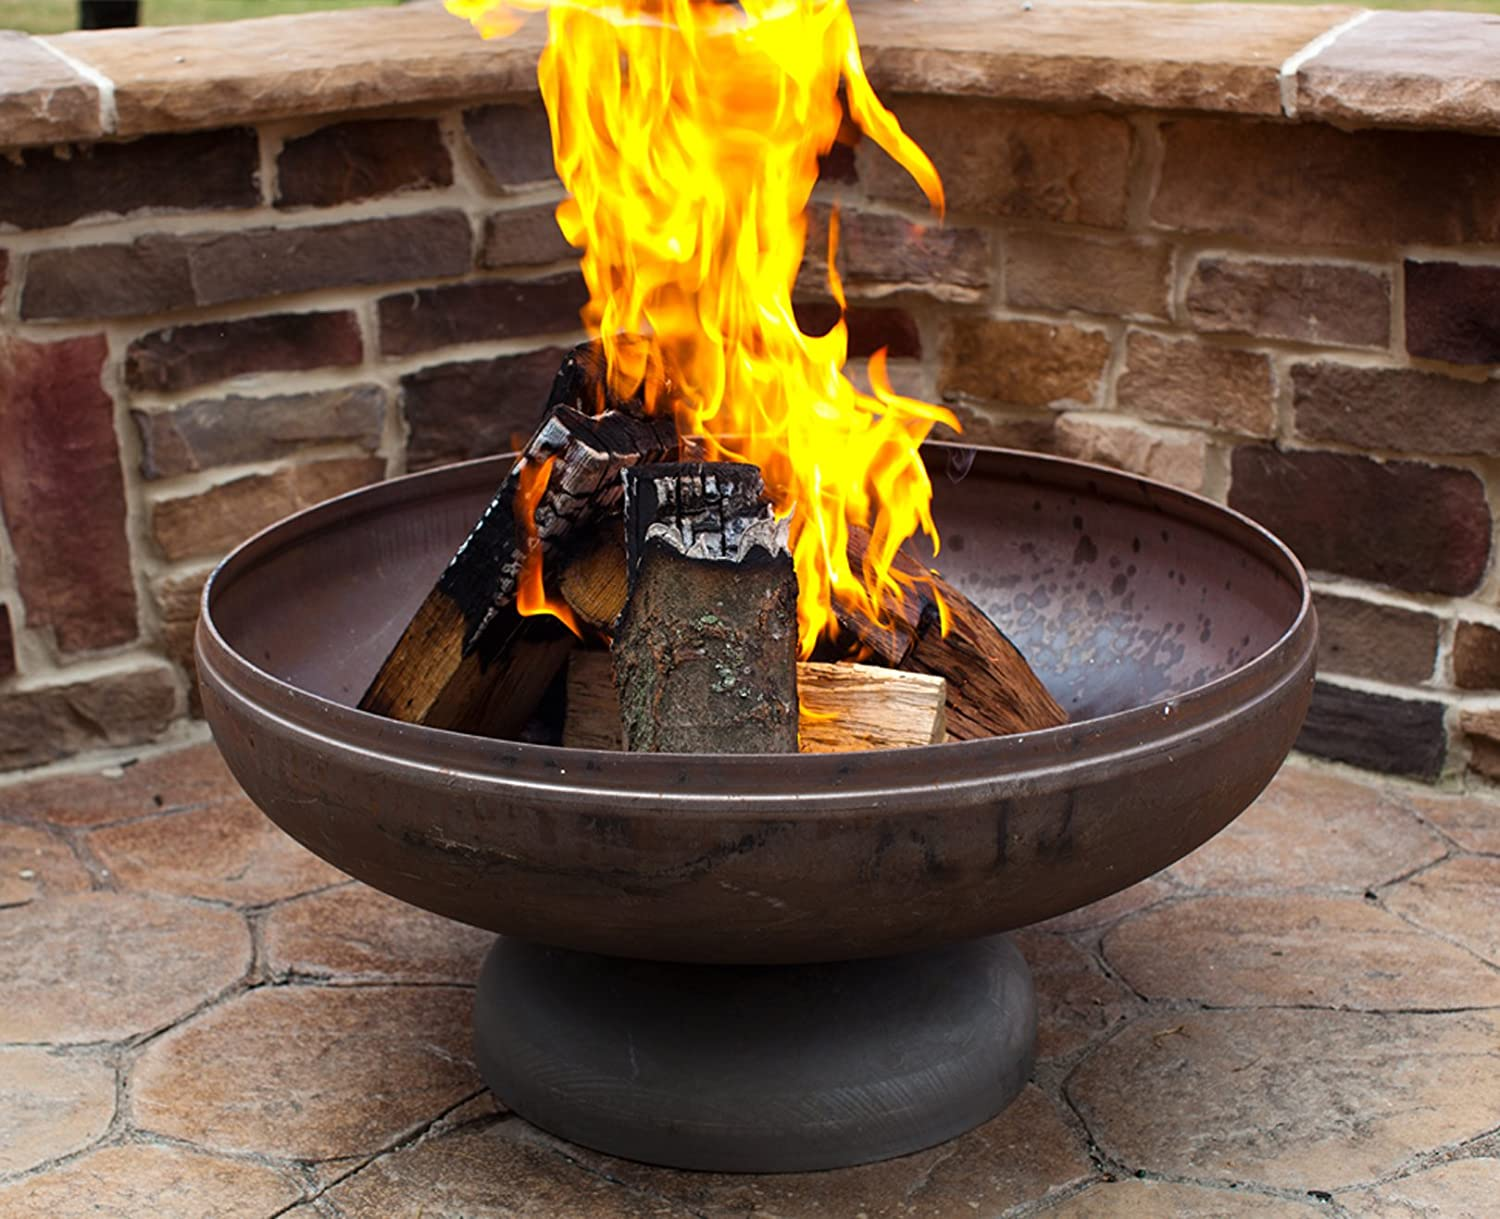 Amazon Com Ohio Flame 30 Patriot Fire Pit Made In Usa Natural Steel Finish Garden Outdoor